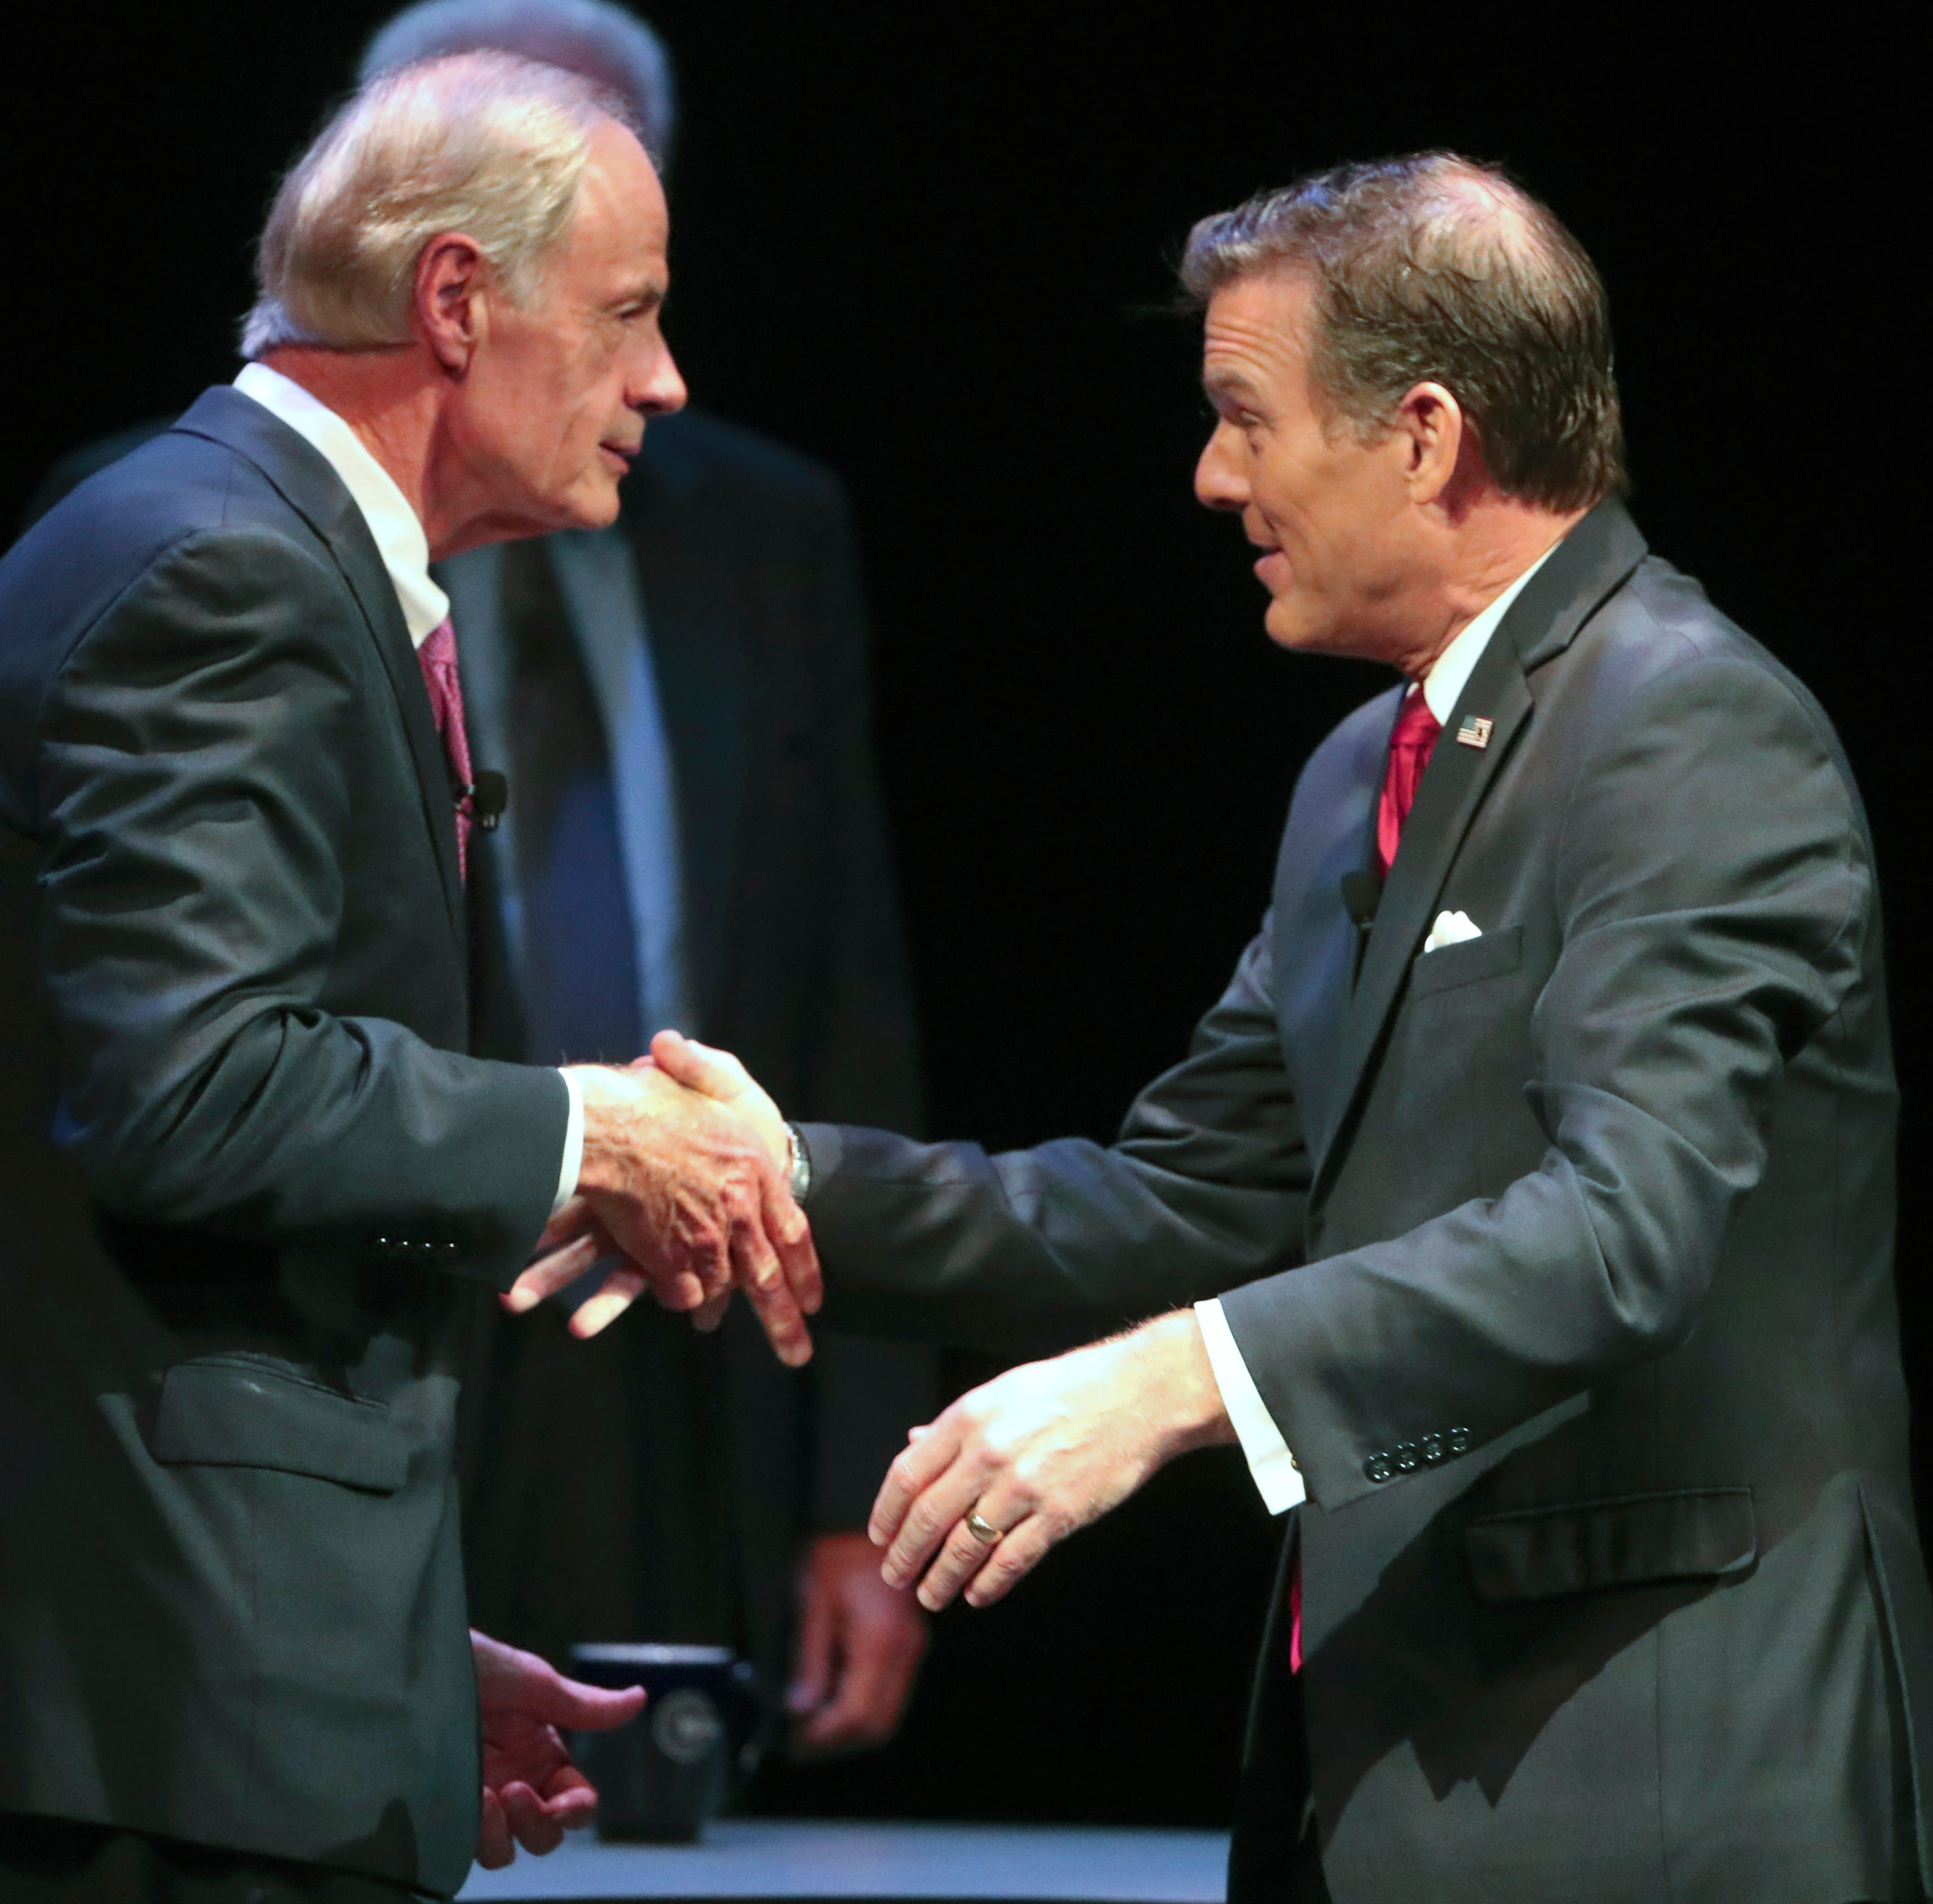 U.S. Sen. Tom Carper pressed by Arlett about decades-old domestic violence incident during debate